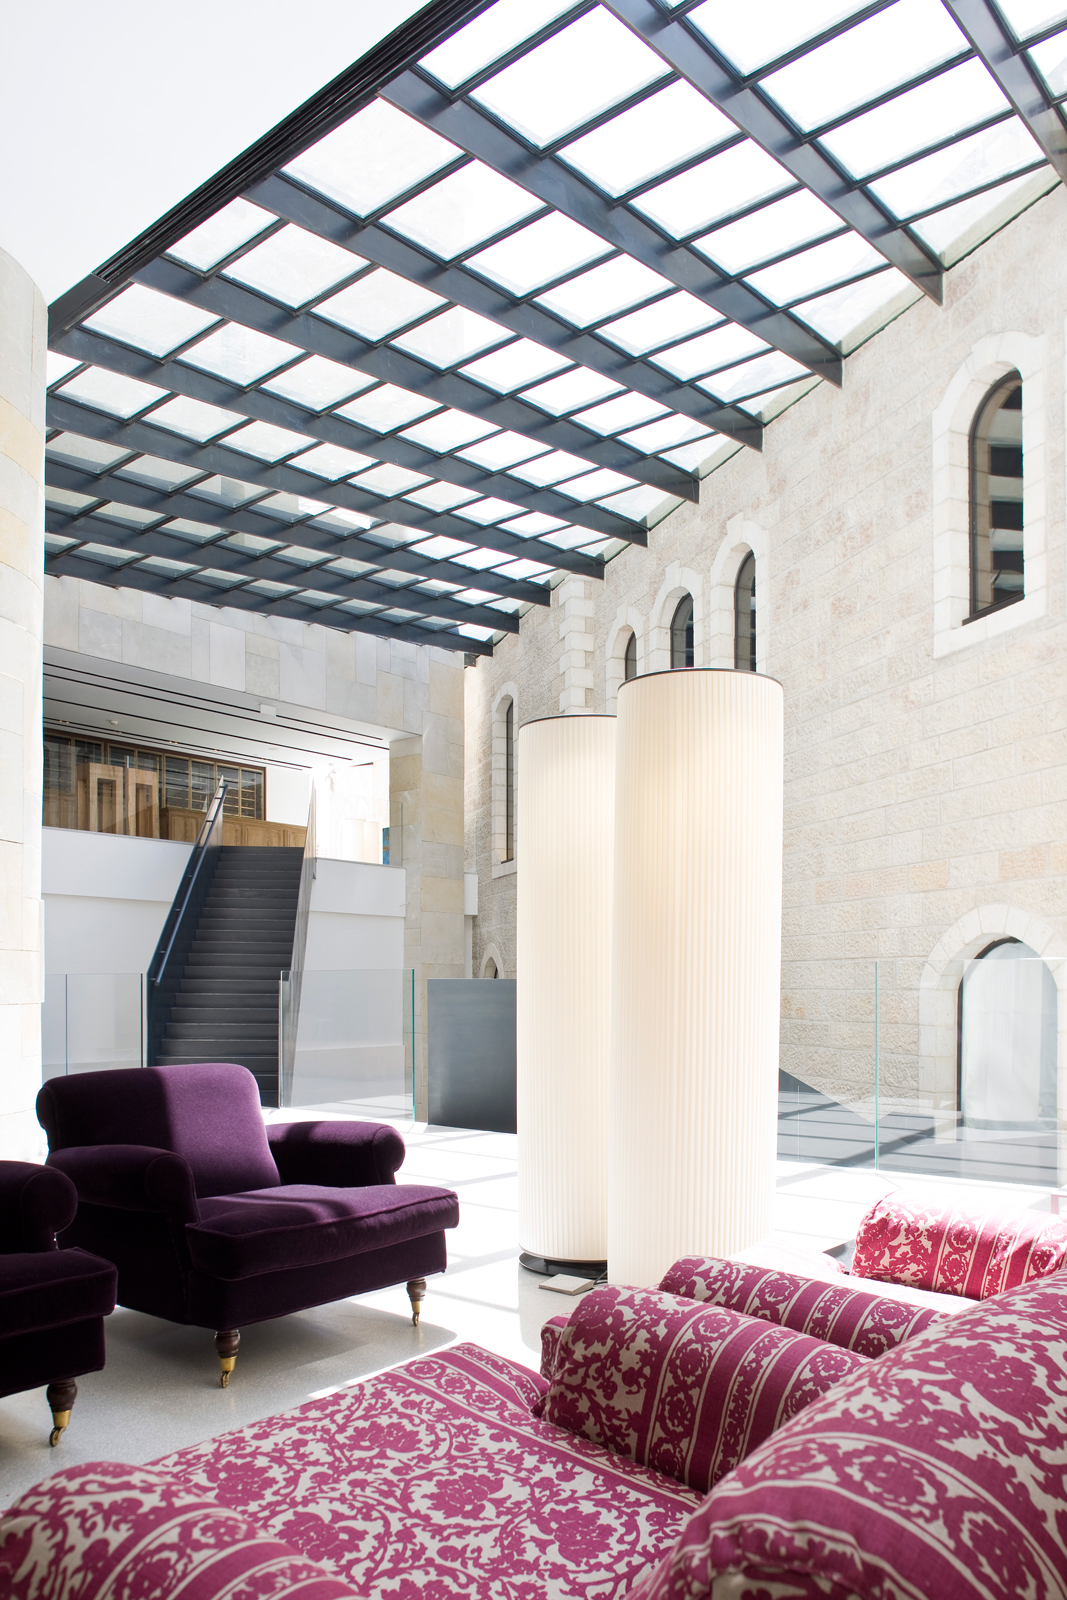 As conceived by Safdie, a pristine ceiling of glass and steel tilts to meet Mamilla Hotel's grand structure of Jerusalem stone. Sunlight pours through, bathing the interiors with warmth and brightness. Eggplant-hued lounges cozy up the sitting area as wel